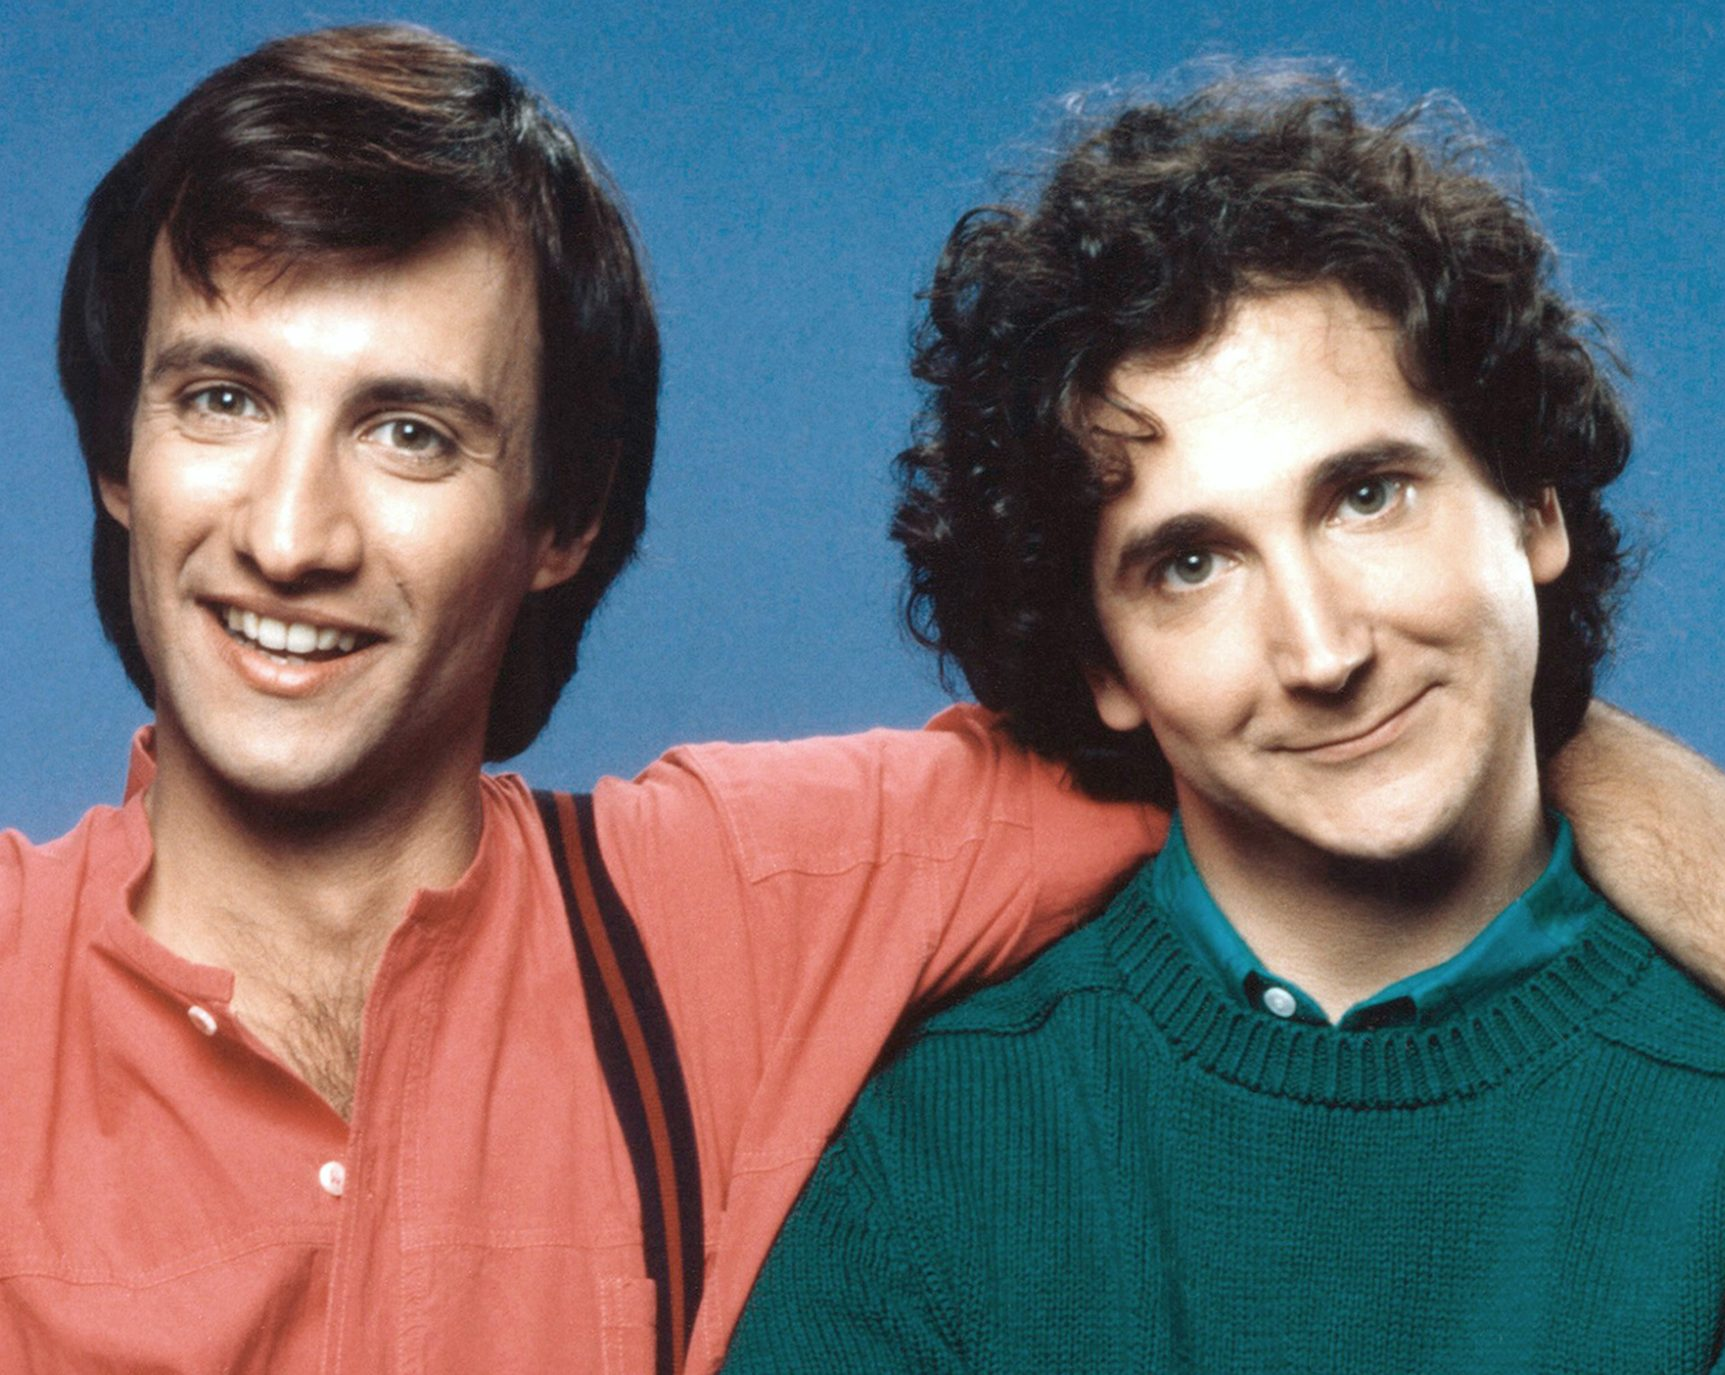 perfect strangers bronson pinchot mark linn baker today 170421 tease 1 1209297 e1621261716220 Need Input? Here's 25 Things You Didn't Know About Short Circuit